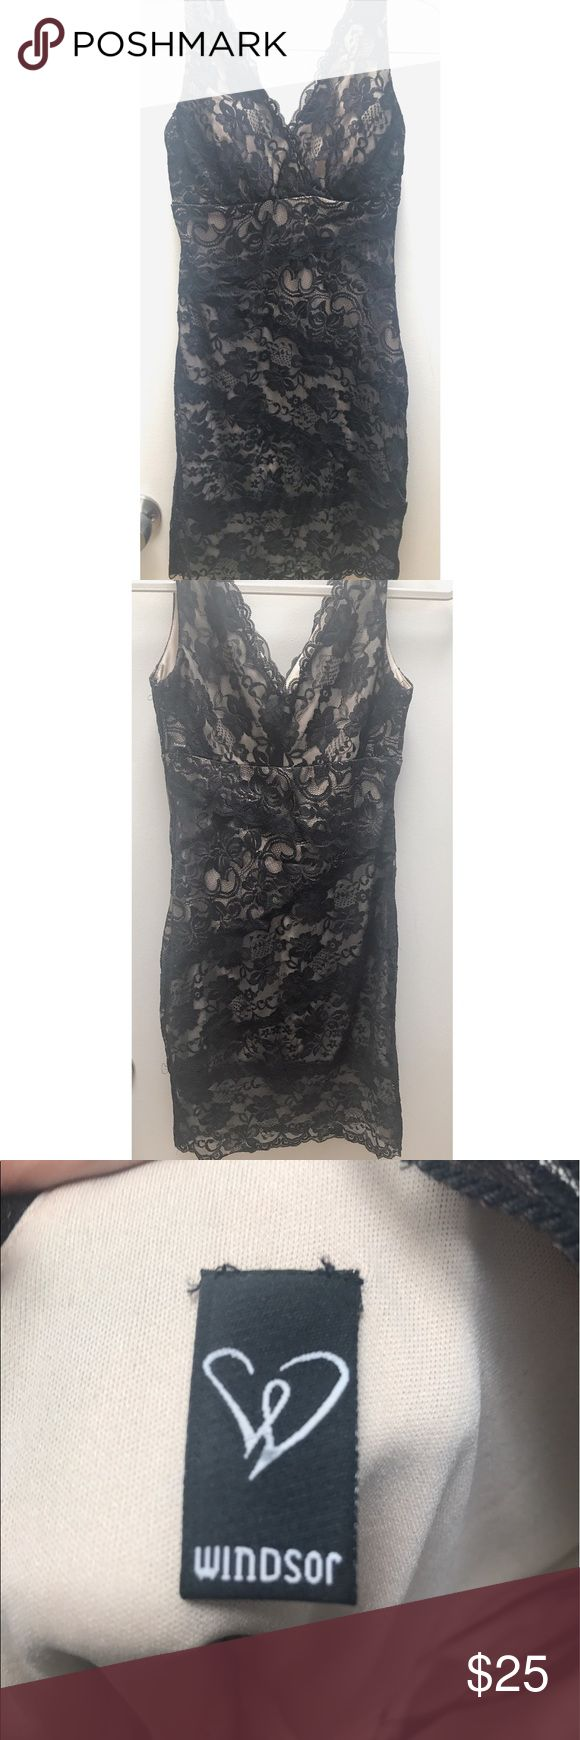 Bodycon Lace Dress Black lace and nude dress. WINDSOR Dresses Mini